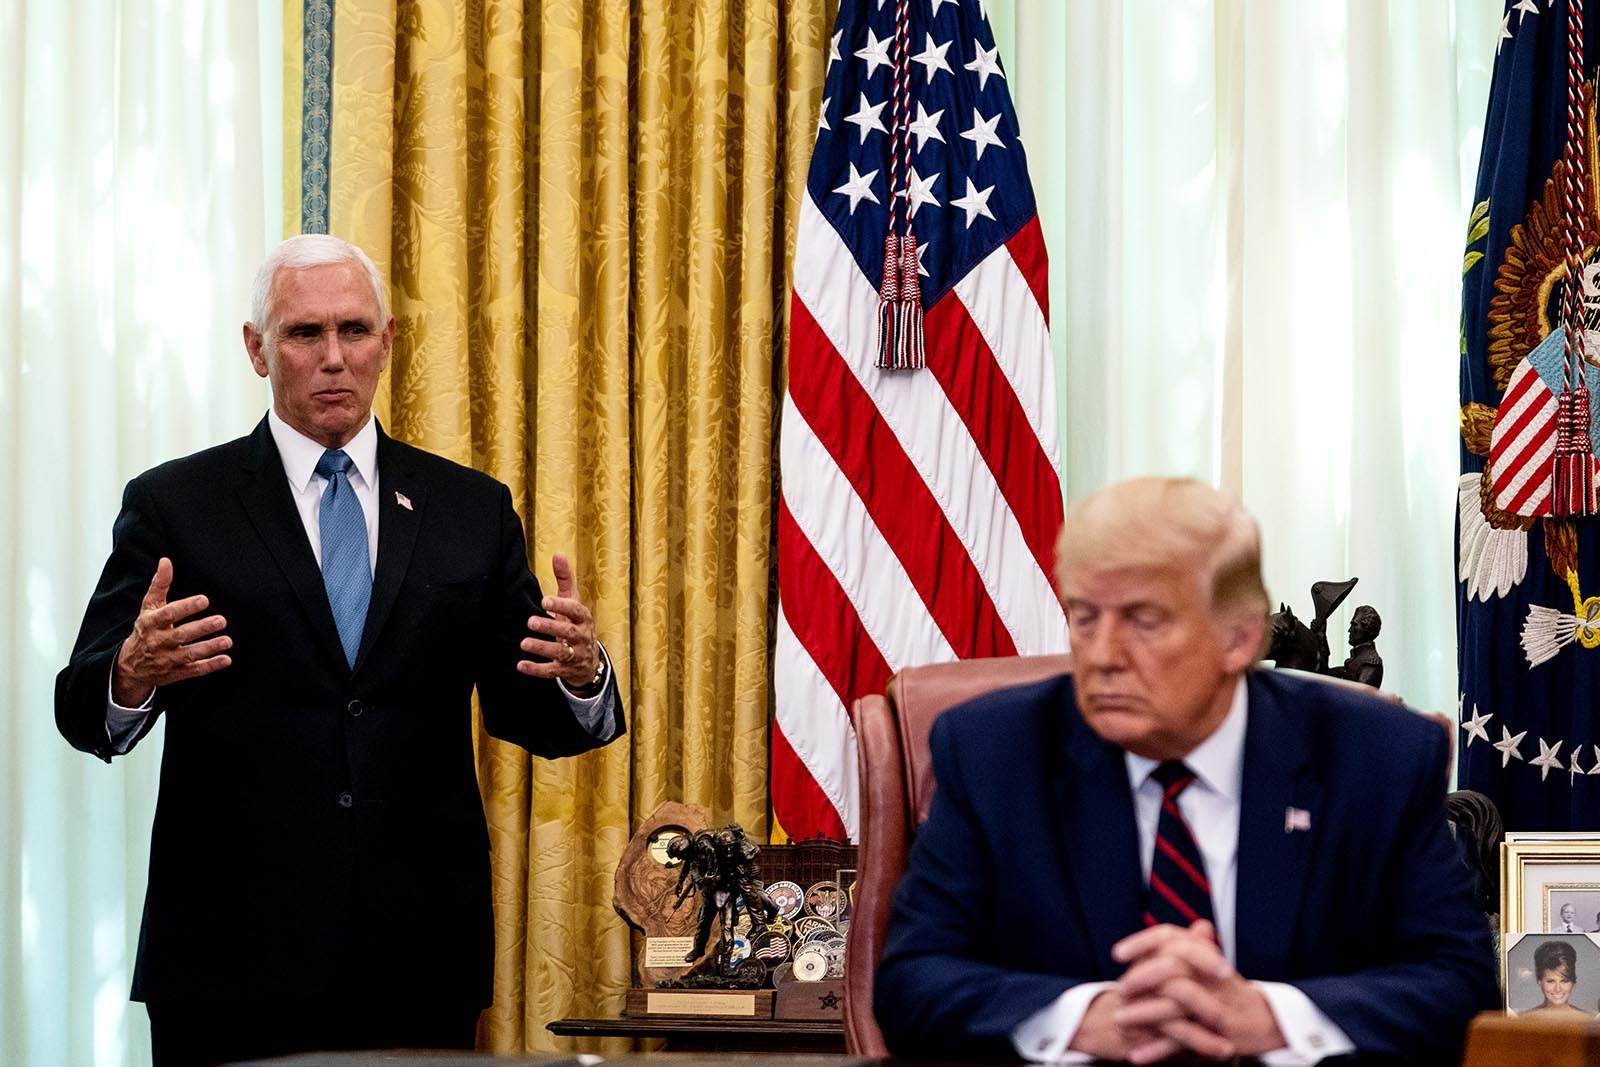 Vice President Mike Pence speaks as President Donald Trump participates in a signing ceremony and meeting with the President of Serbia Aleksandar Vucic and the Prime Minister of Kosovo Avdullah Hoti in the Oval Office of the White House on September 4 in Washington.